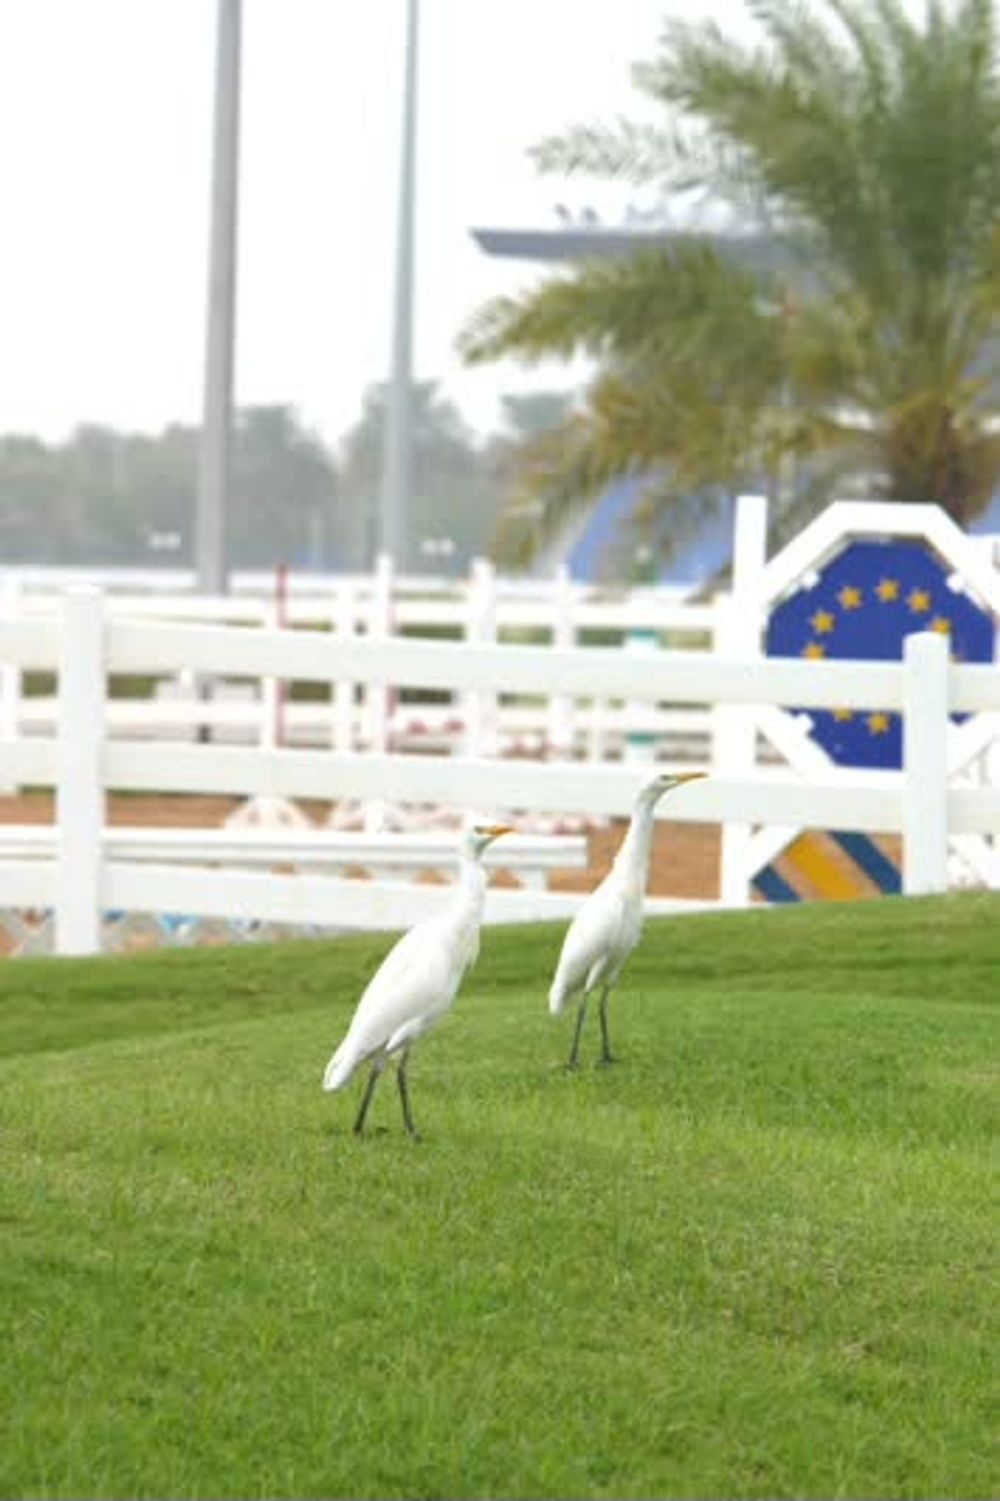 title: Two White Birds at the Emirates Heritage Club